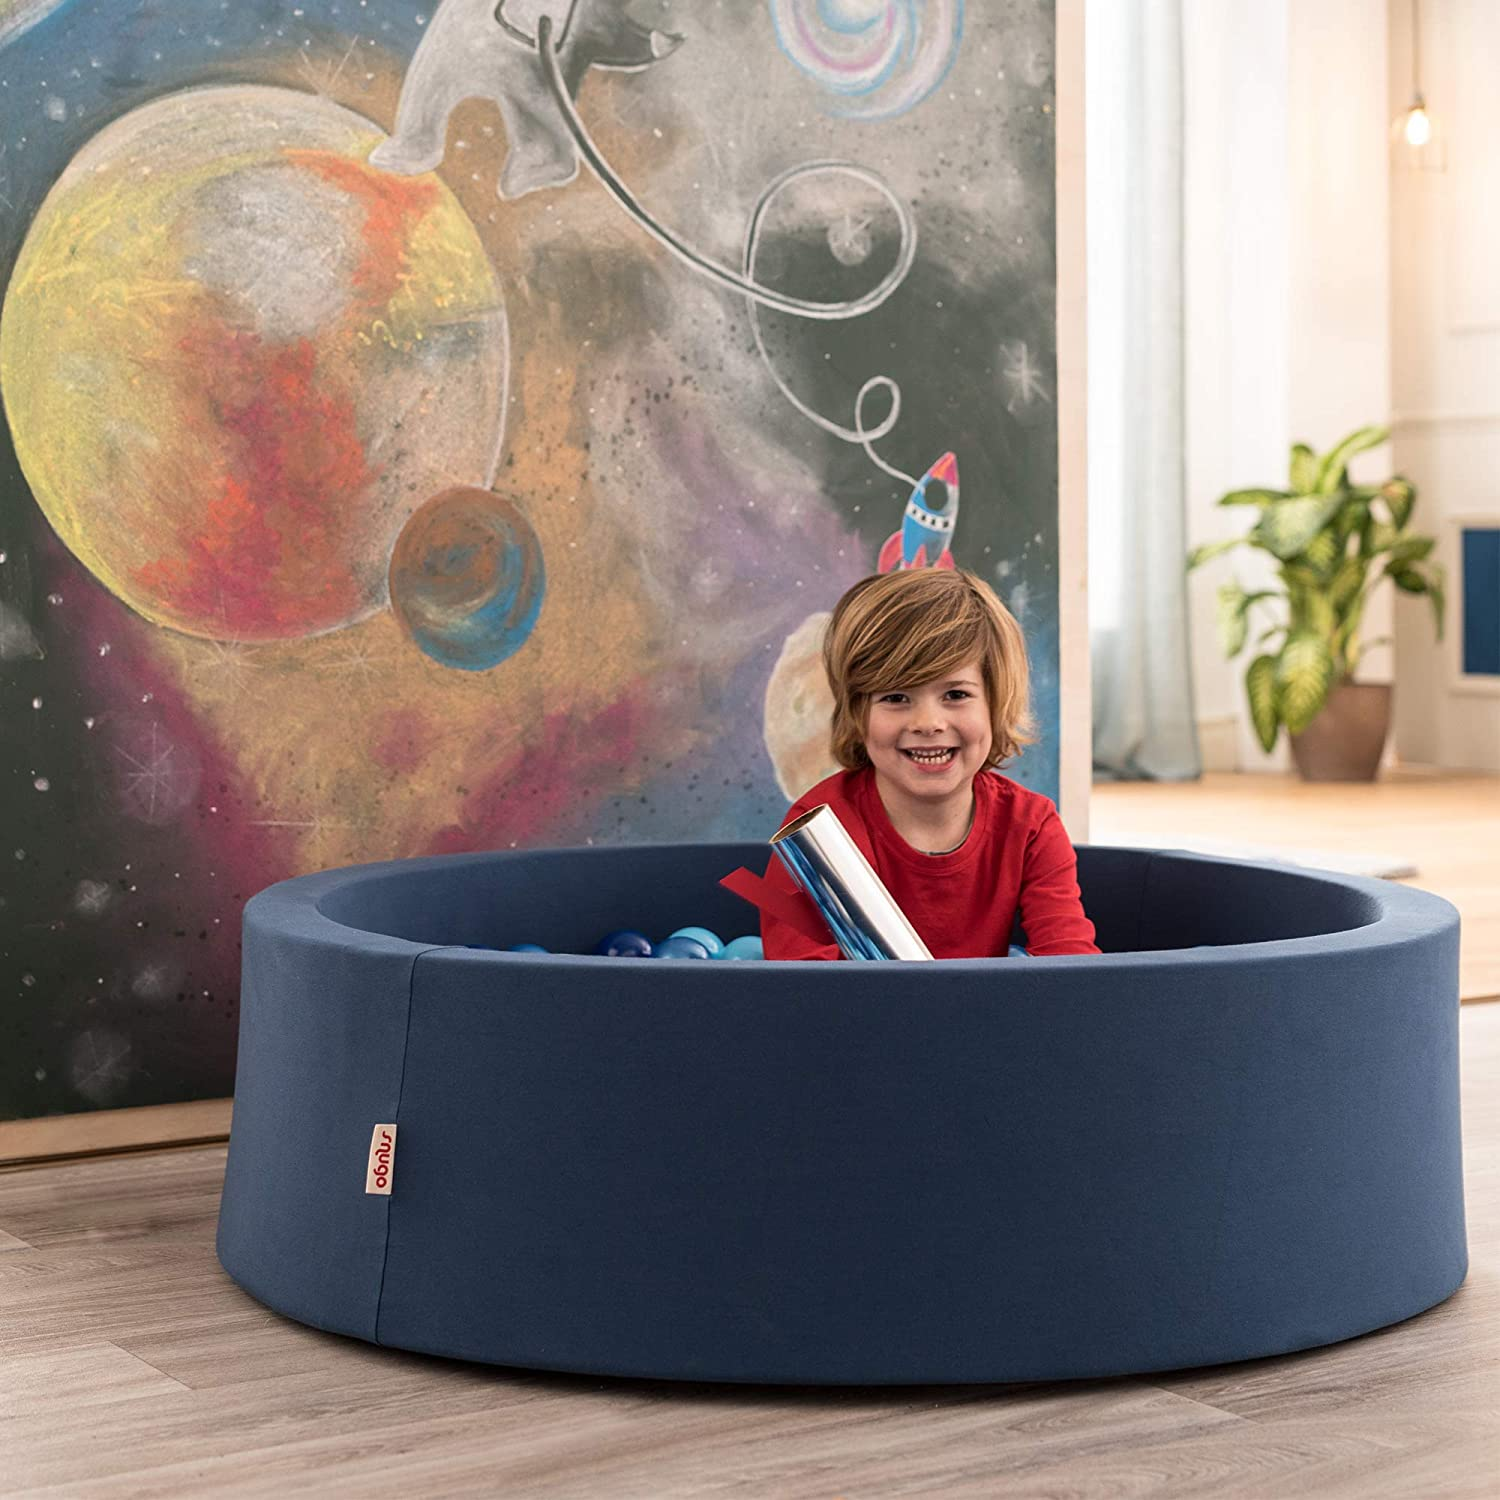 snugo Children's Ball Pit World in Dark Blue with Over 350 Balls Made in Germany / Augsburg